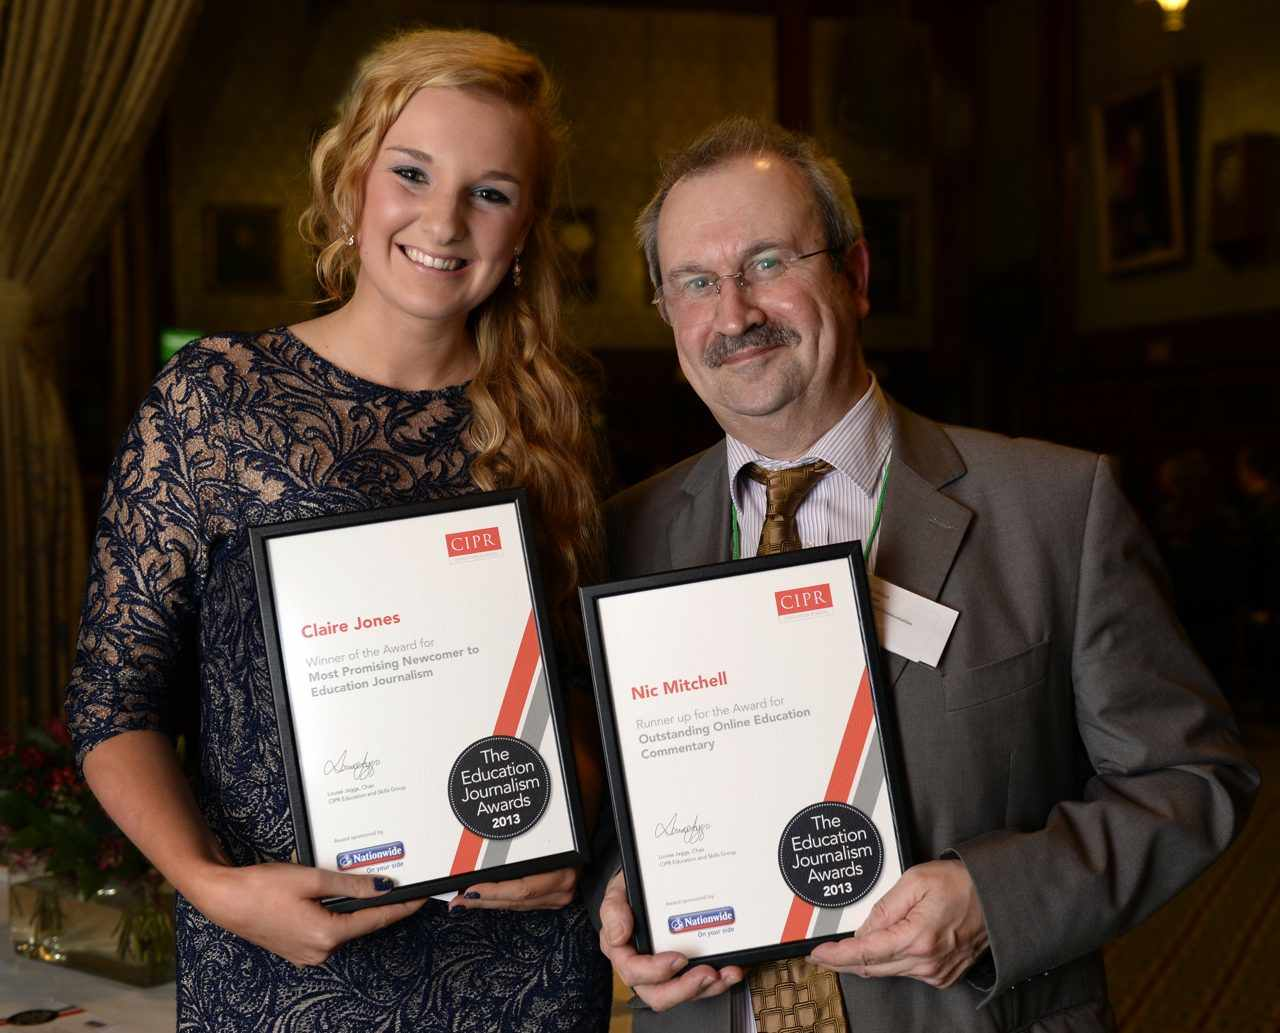 We're runners-up for the Outstanding Online Education Commentary Award